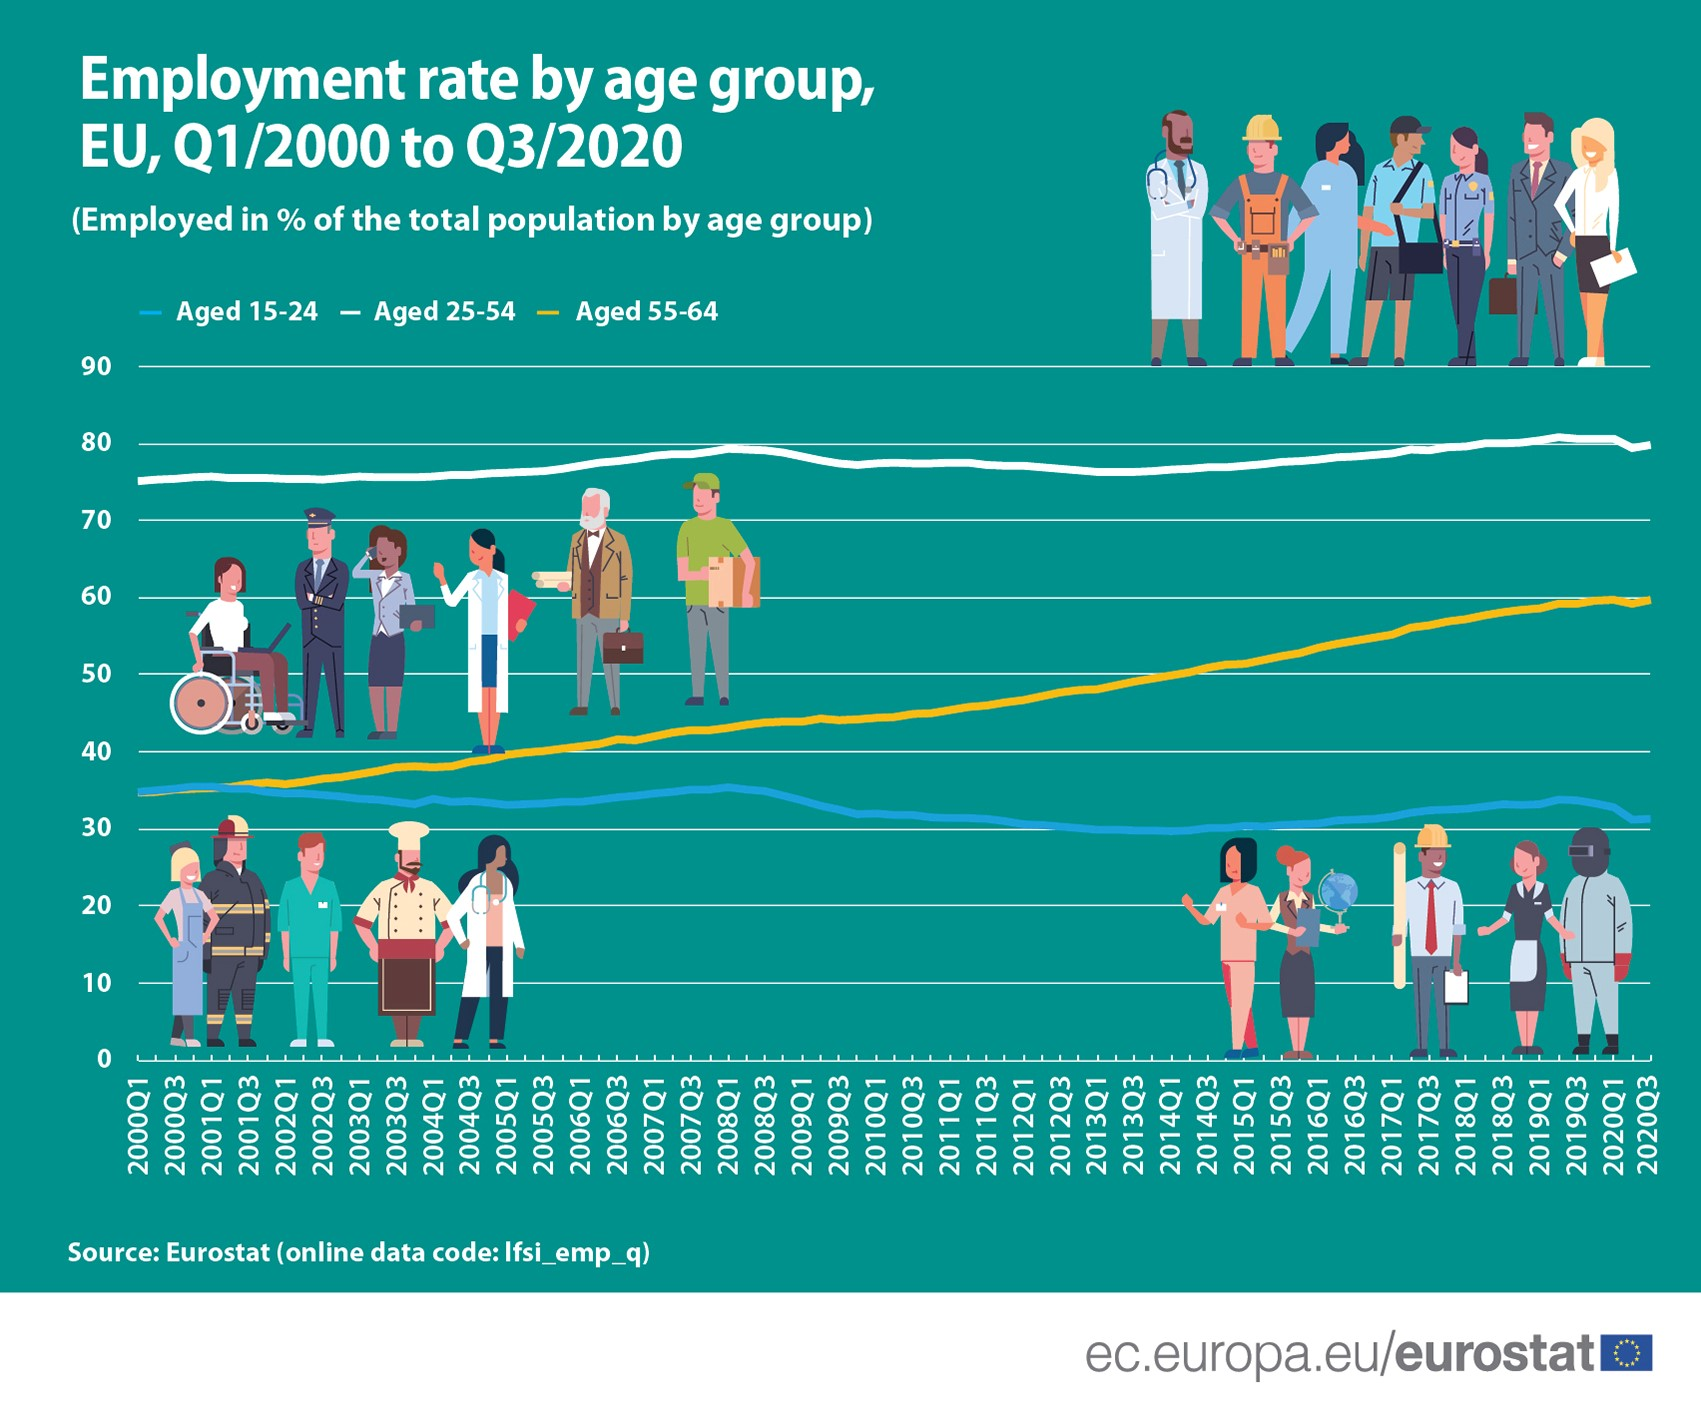 Employment rate by age group